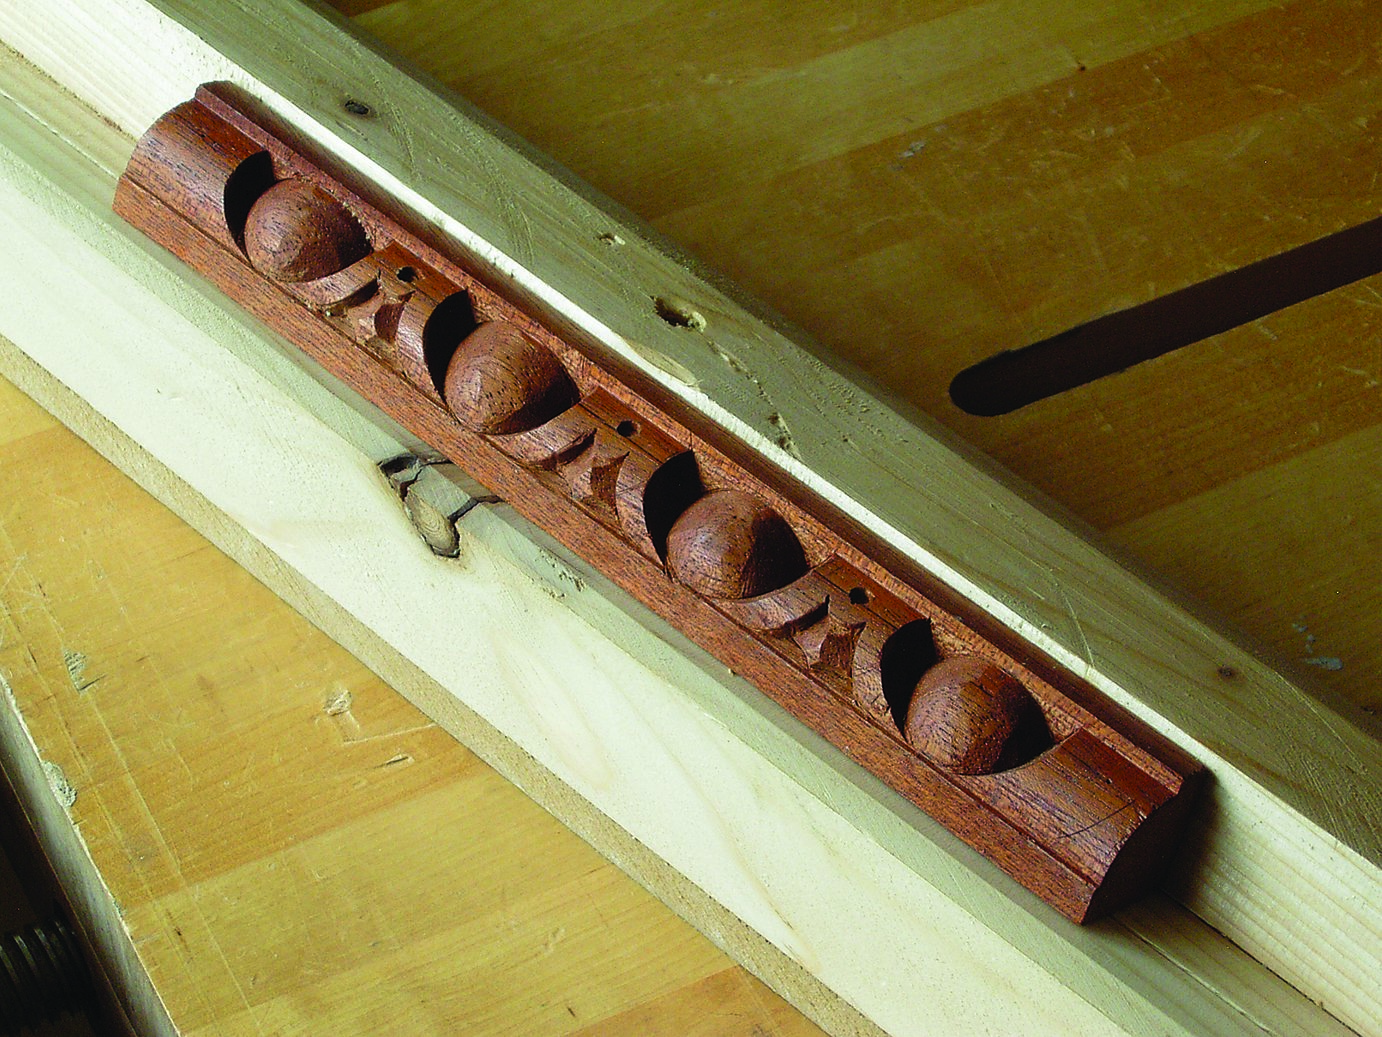 Moulding held in a jig and secured with double-sided tape.